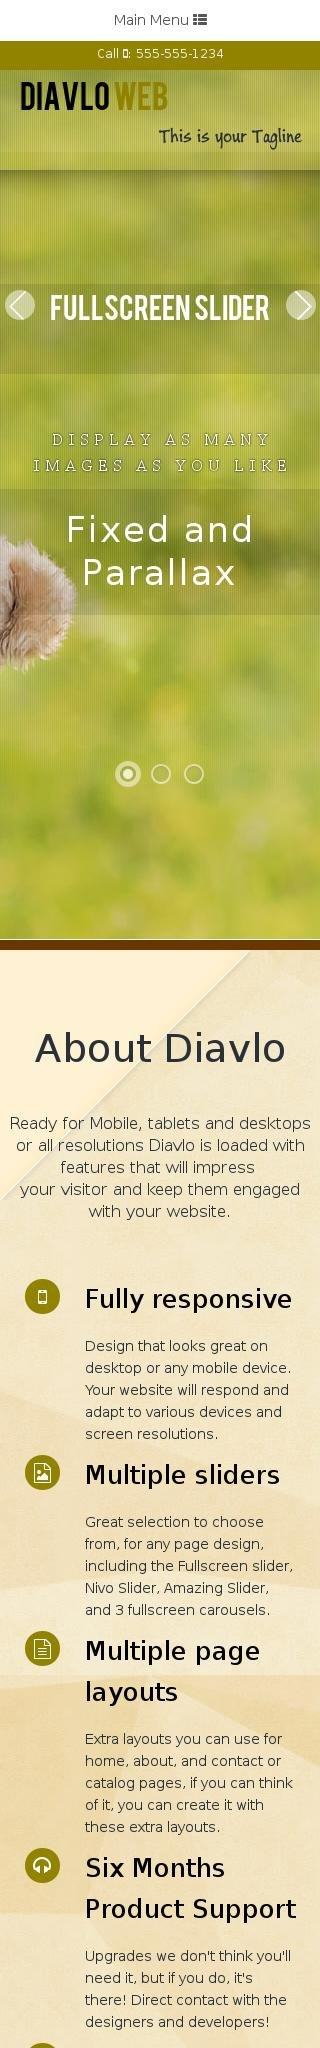 Mobile: Nature Web Template